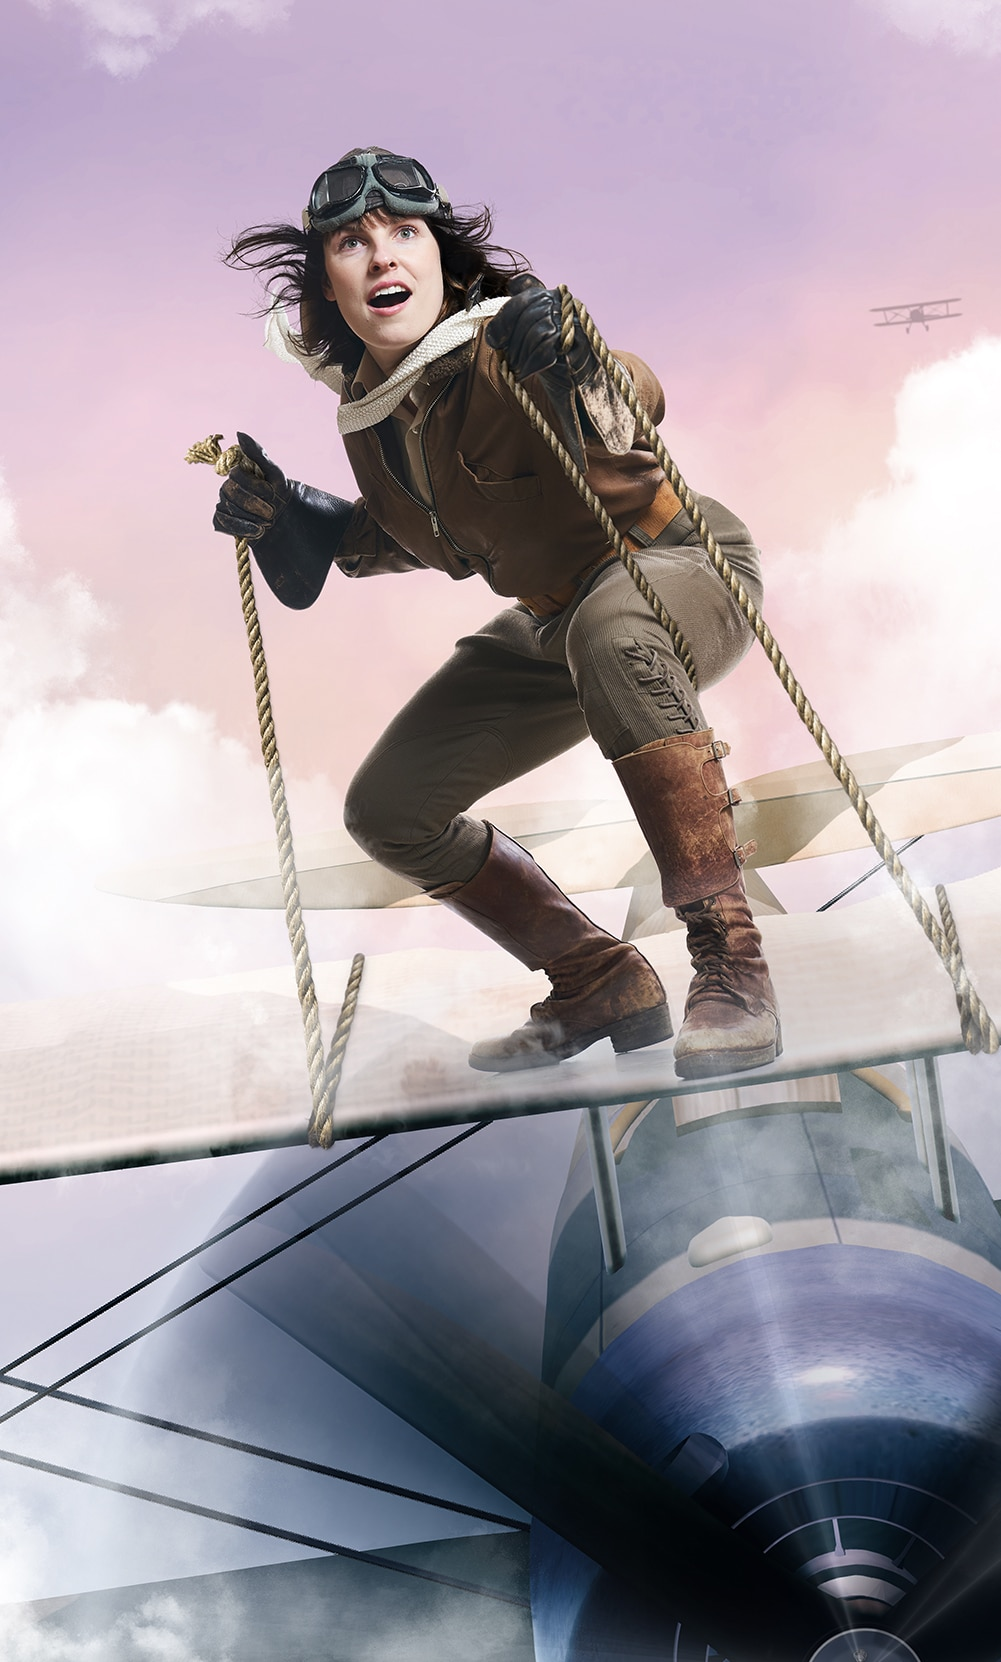 A woman stands on top of an airplane in flight, holding onto two ropes. She is dressed in 1920's aviation clothes. The sky is a purple pink with another visible plane in the background.